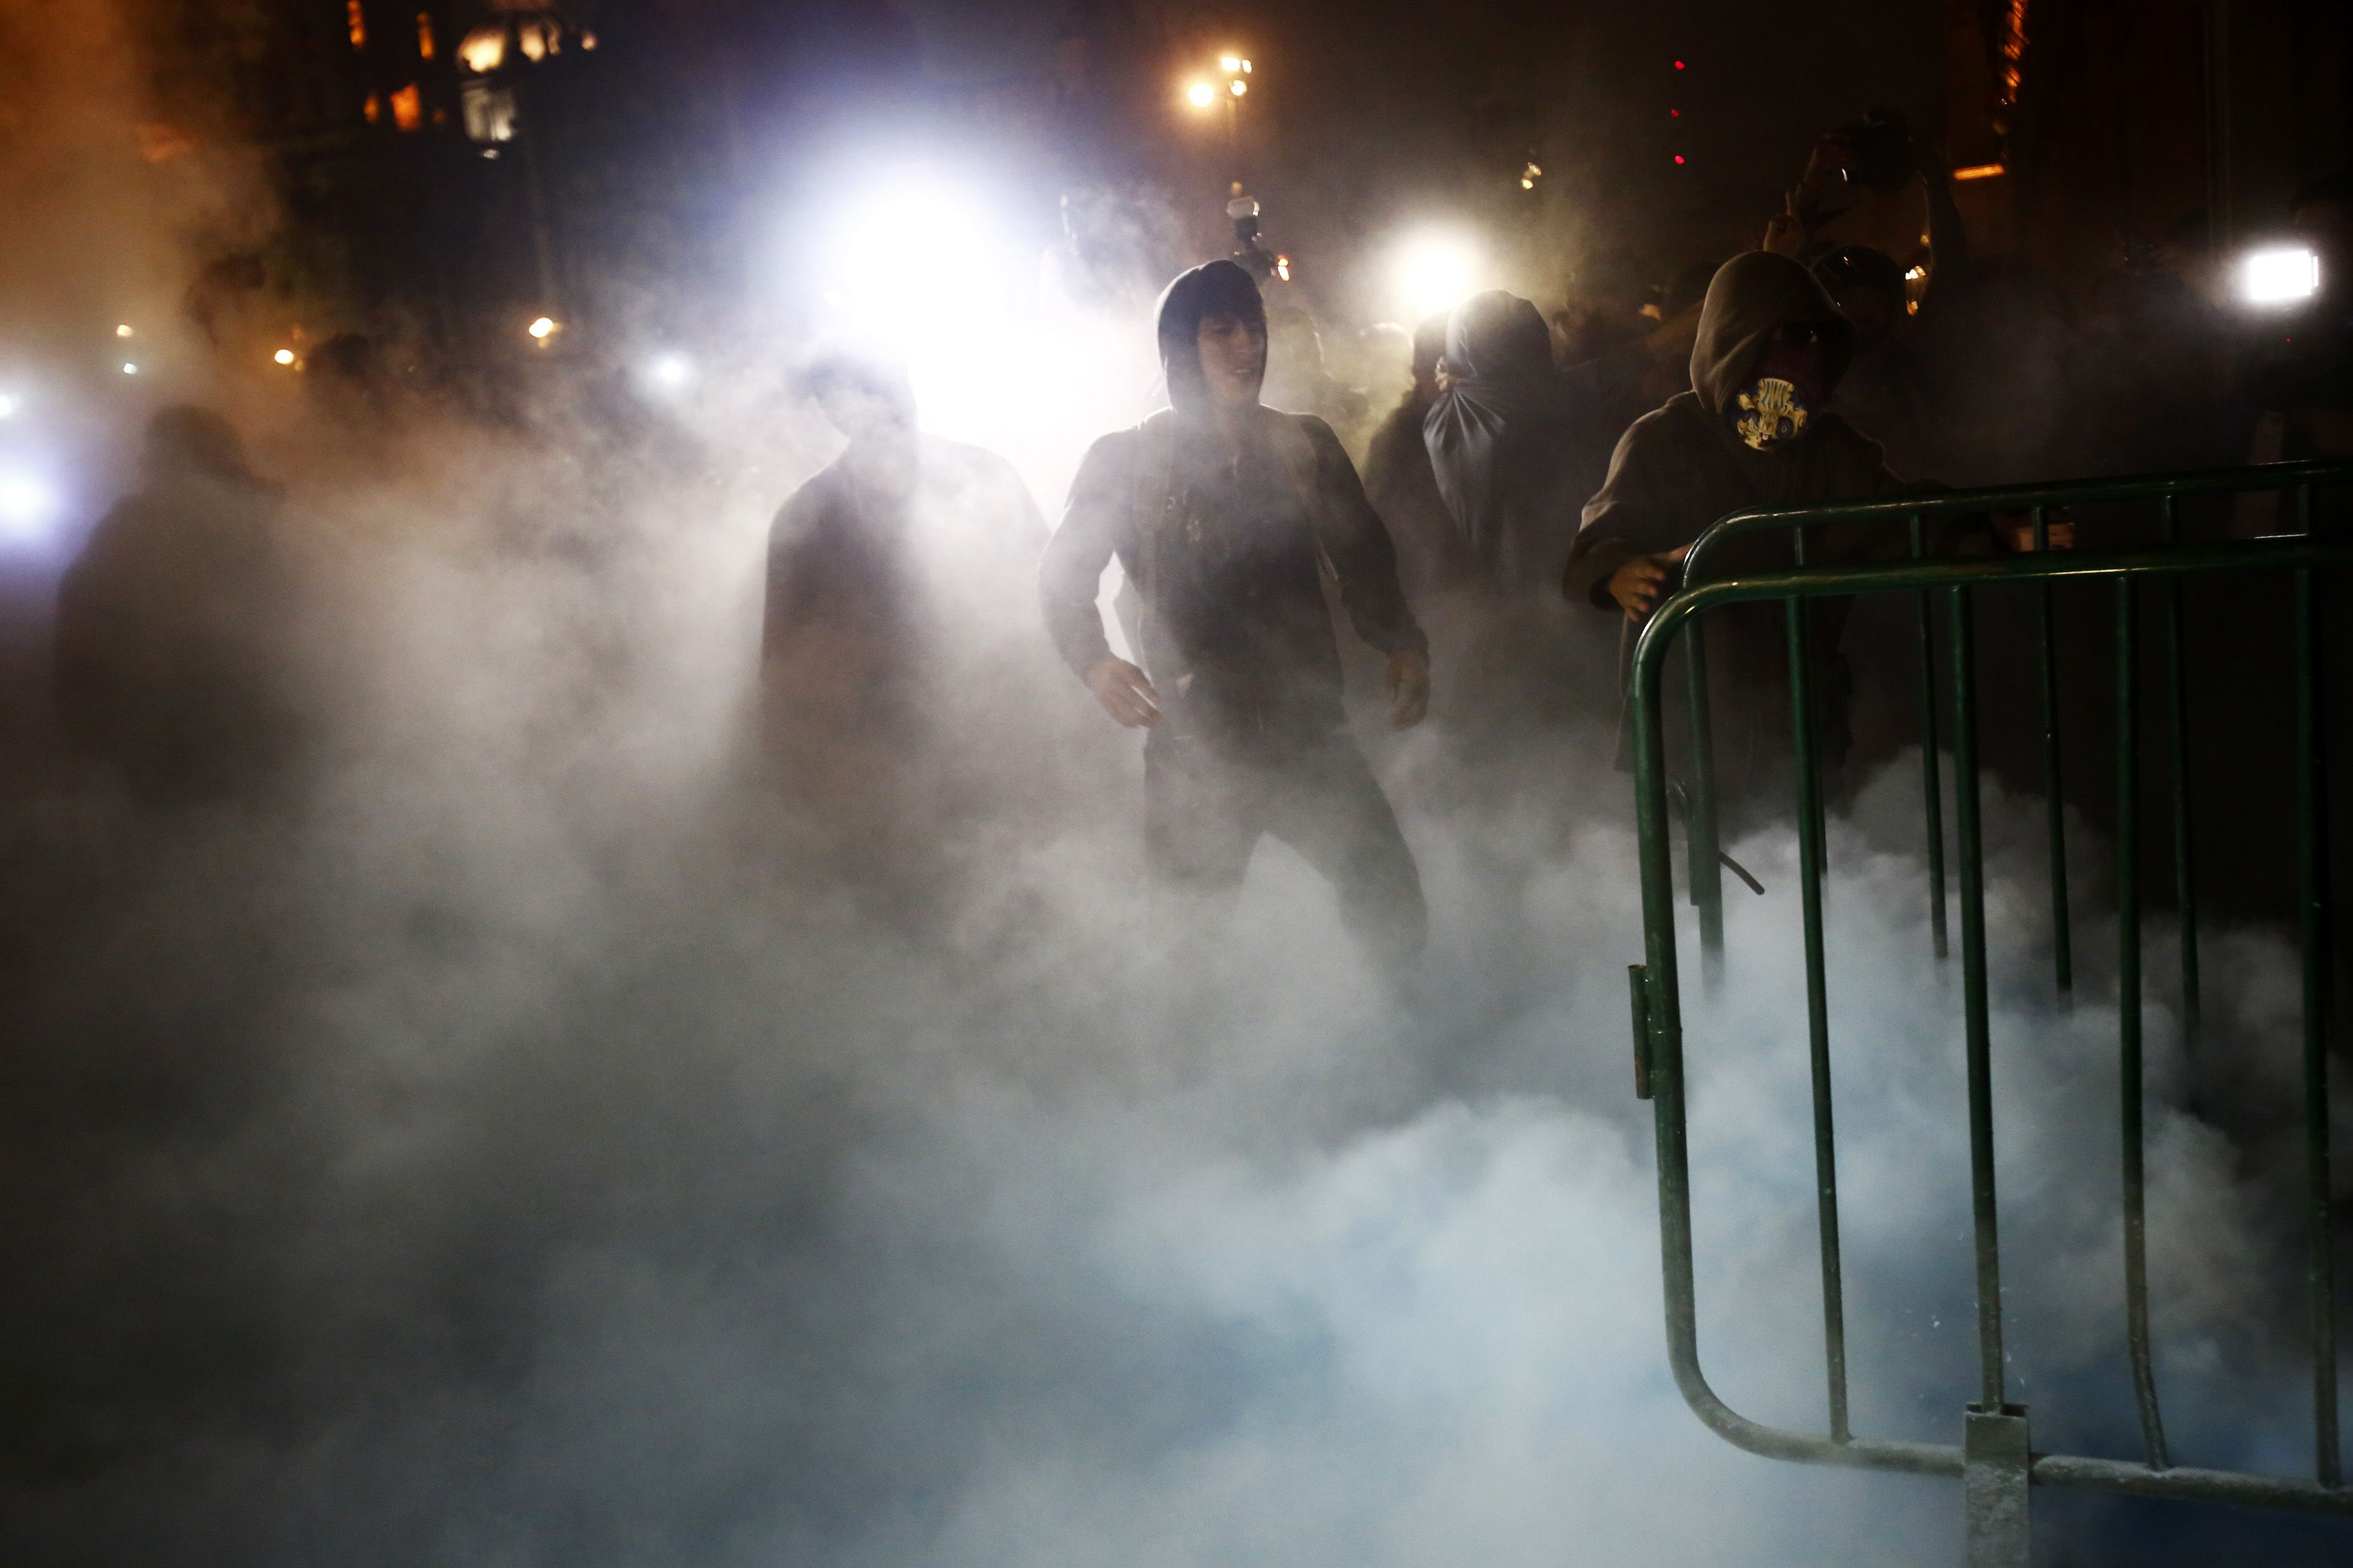 Protesters stand amidst smoke outside Mexican President Enrique Pena Nieto's ceremonial palace in the historic center of Mexico City late November 8, 2014. Protesters set fire to the wooden door during a protest denouncing the apparent massacre of 43 trainee teachers. The group, carrying torches, broke away from what had been a mostly peaceful protest demanding justice for the students, who were abducted six weeks ago and apparently murdered and incinerated by corrupt police in league with drug gang members. REUTERS/Edgard Garrido (MEXICO - Tags: POLITICS CRIME LAW CIVIL UNREST EDUCATION) - RTR4DEHV